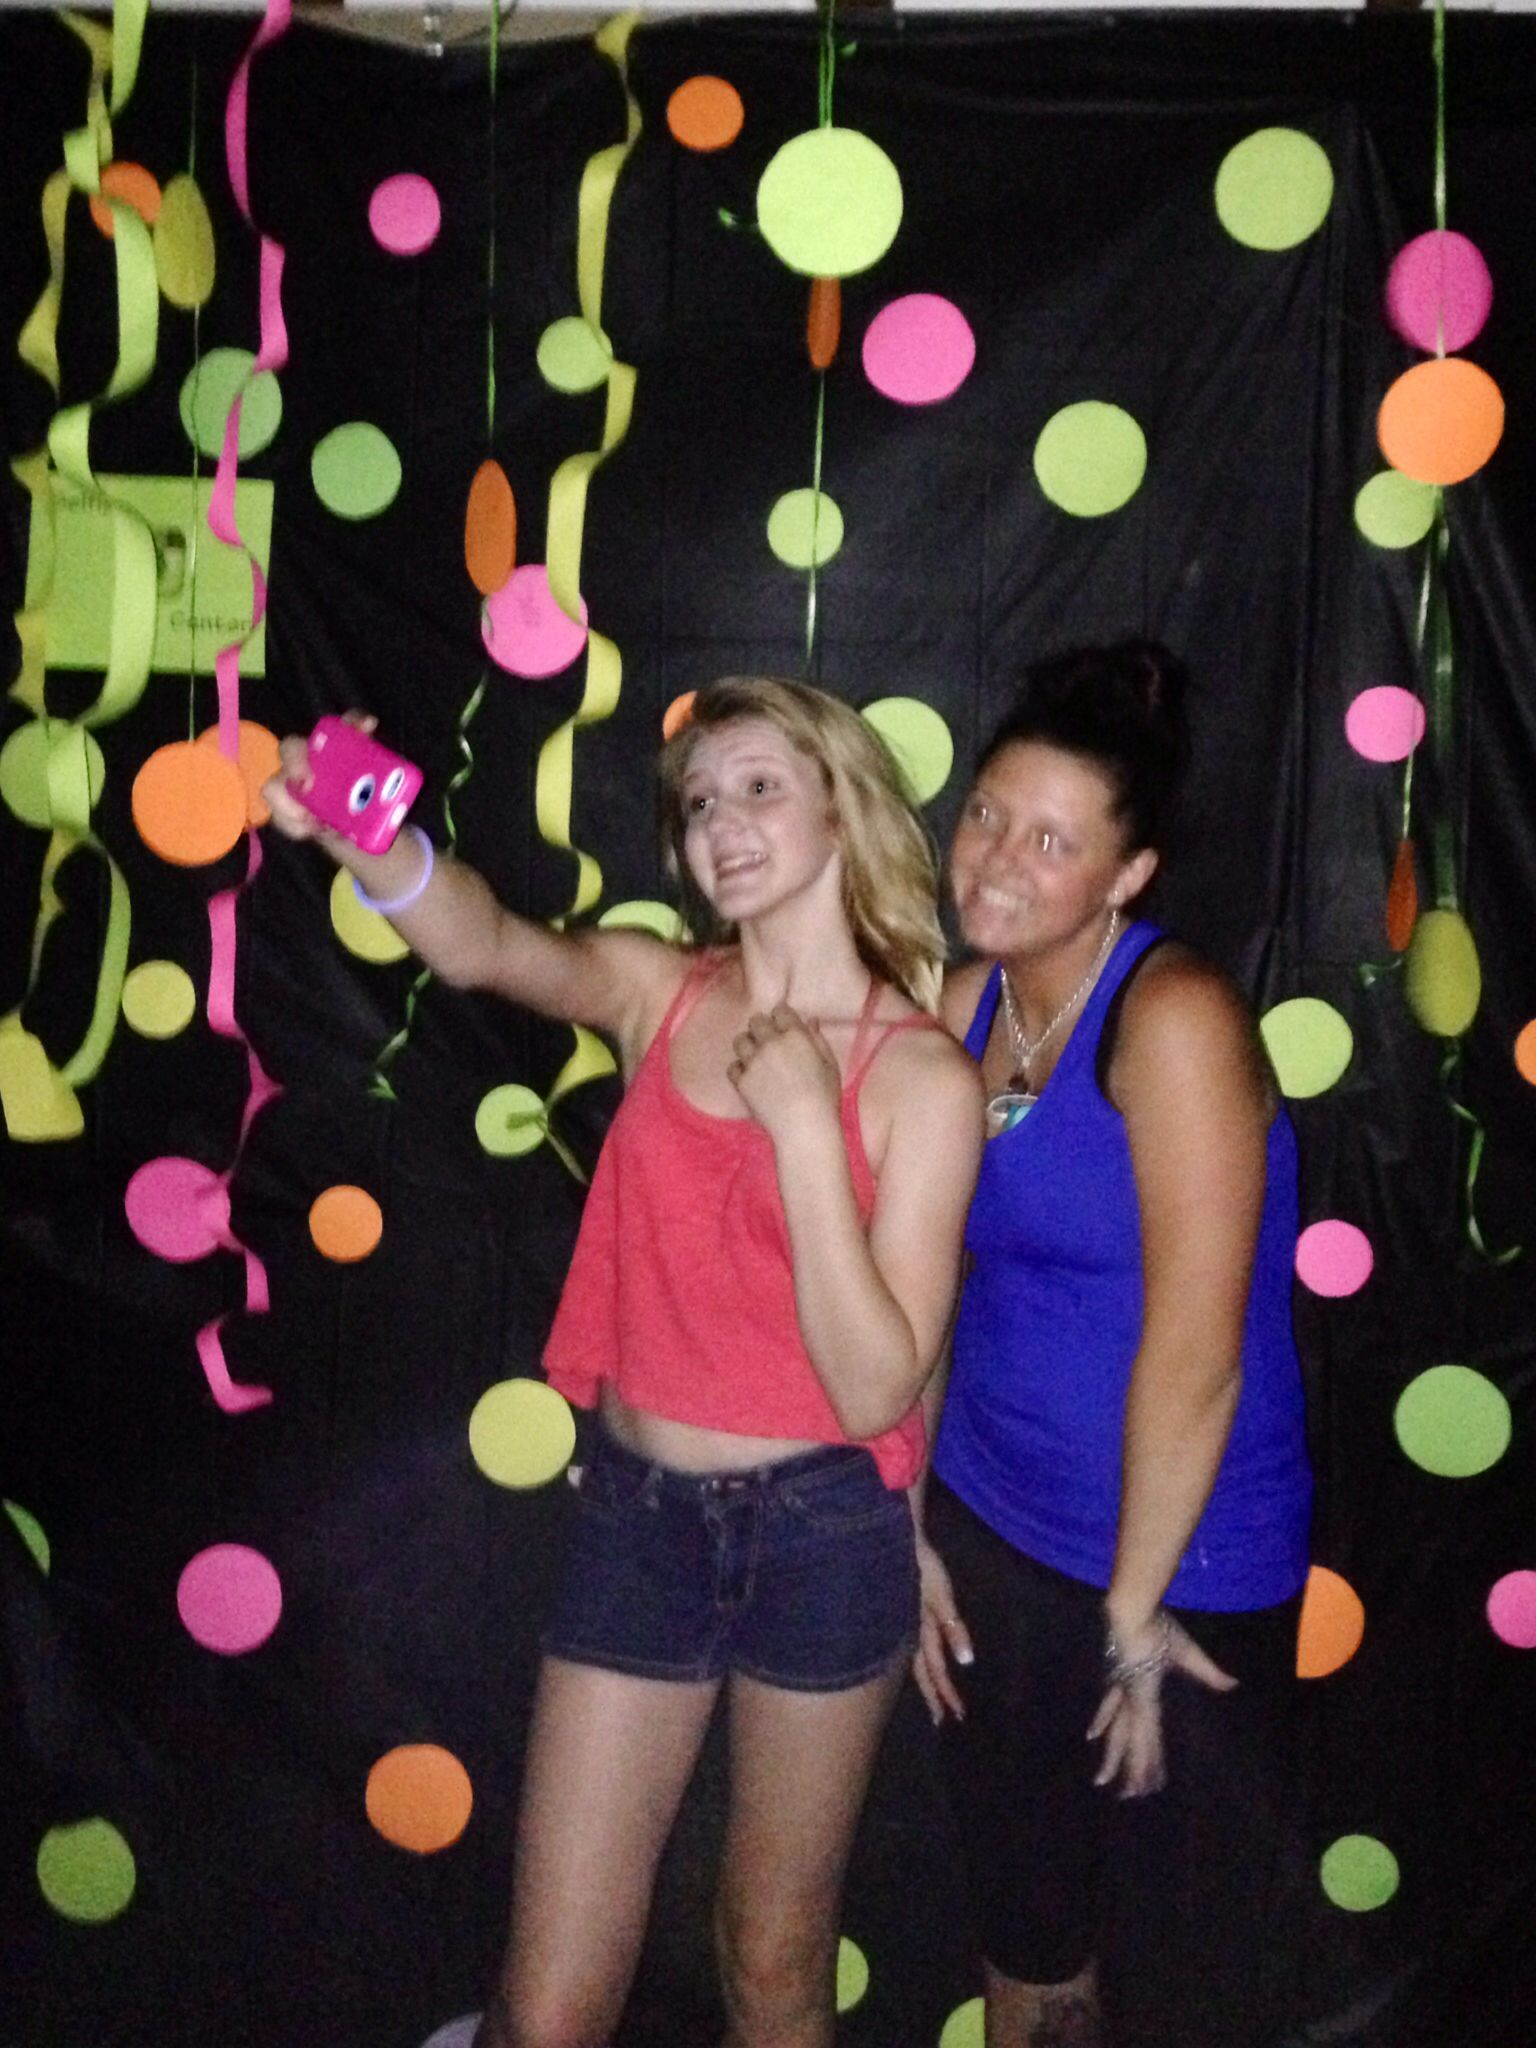 Awesome selfie center. Black light party. Glow party. Neon party. Ila's13th glow party!! Photo booth DIY